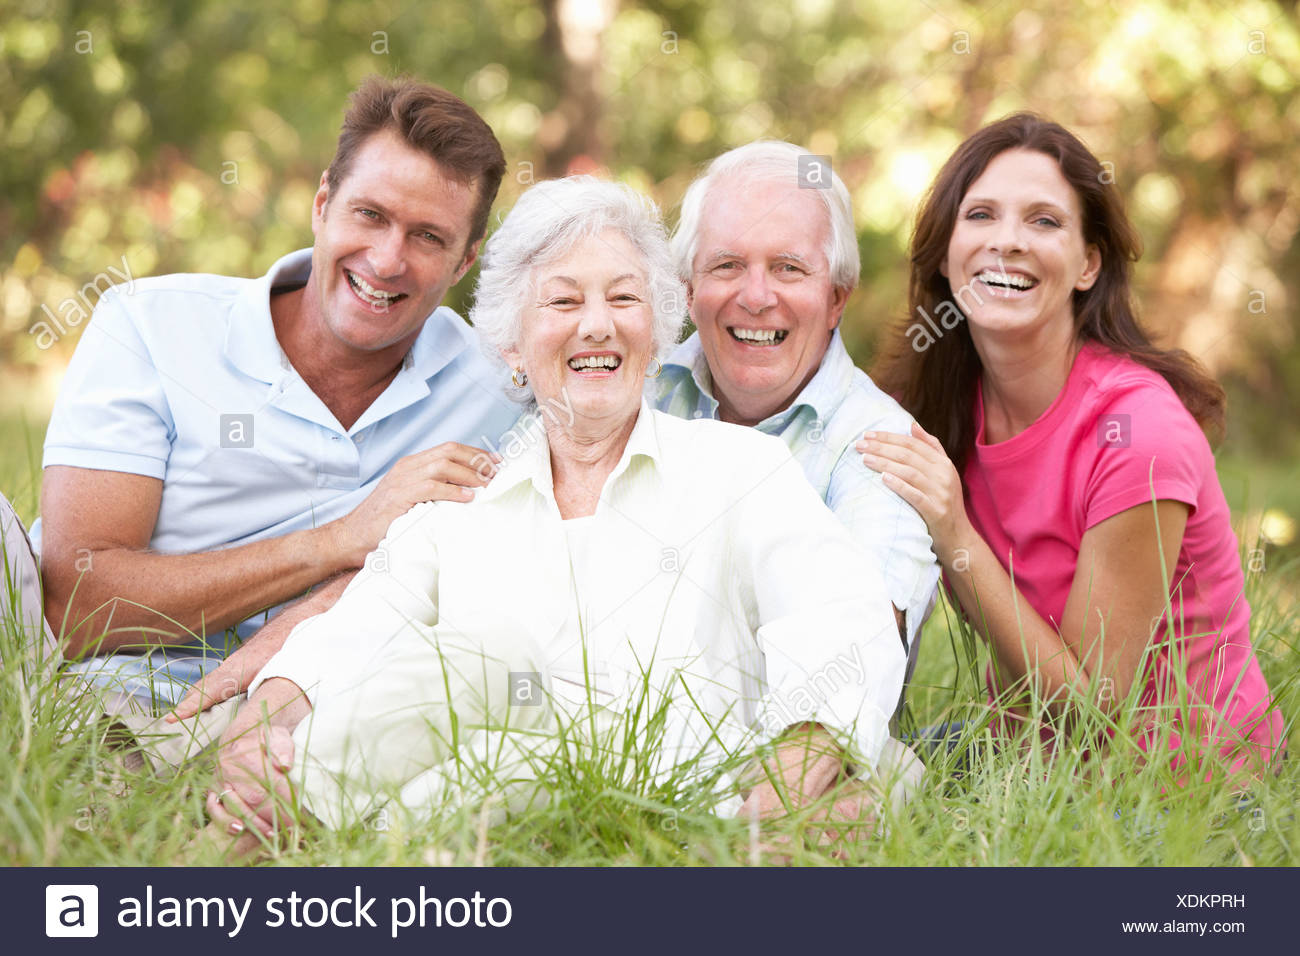 Senior Couple With Grown Up Children In Park - Stock Image